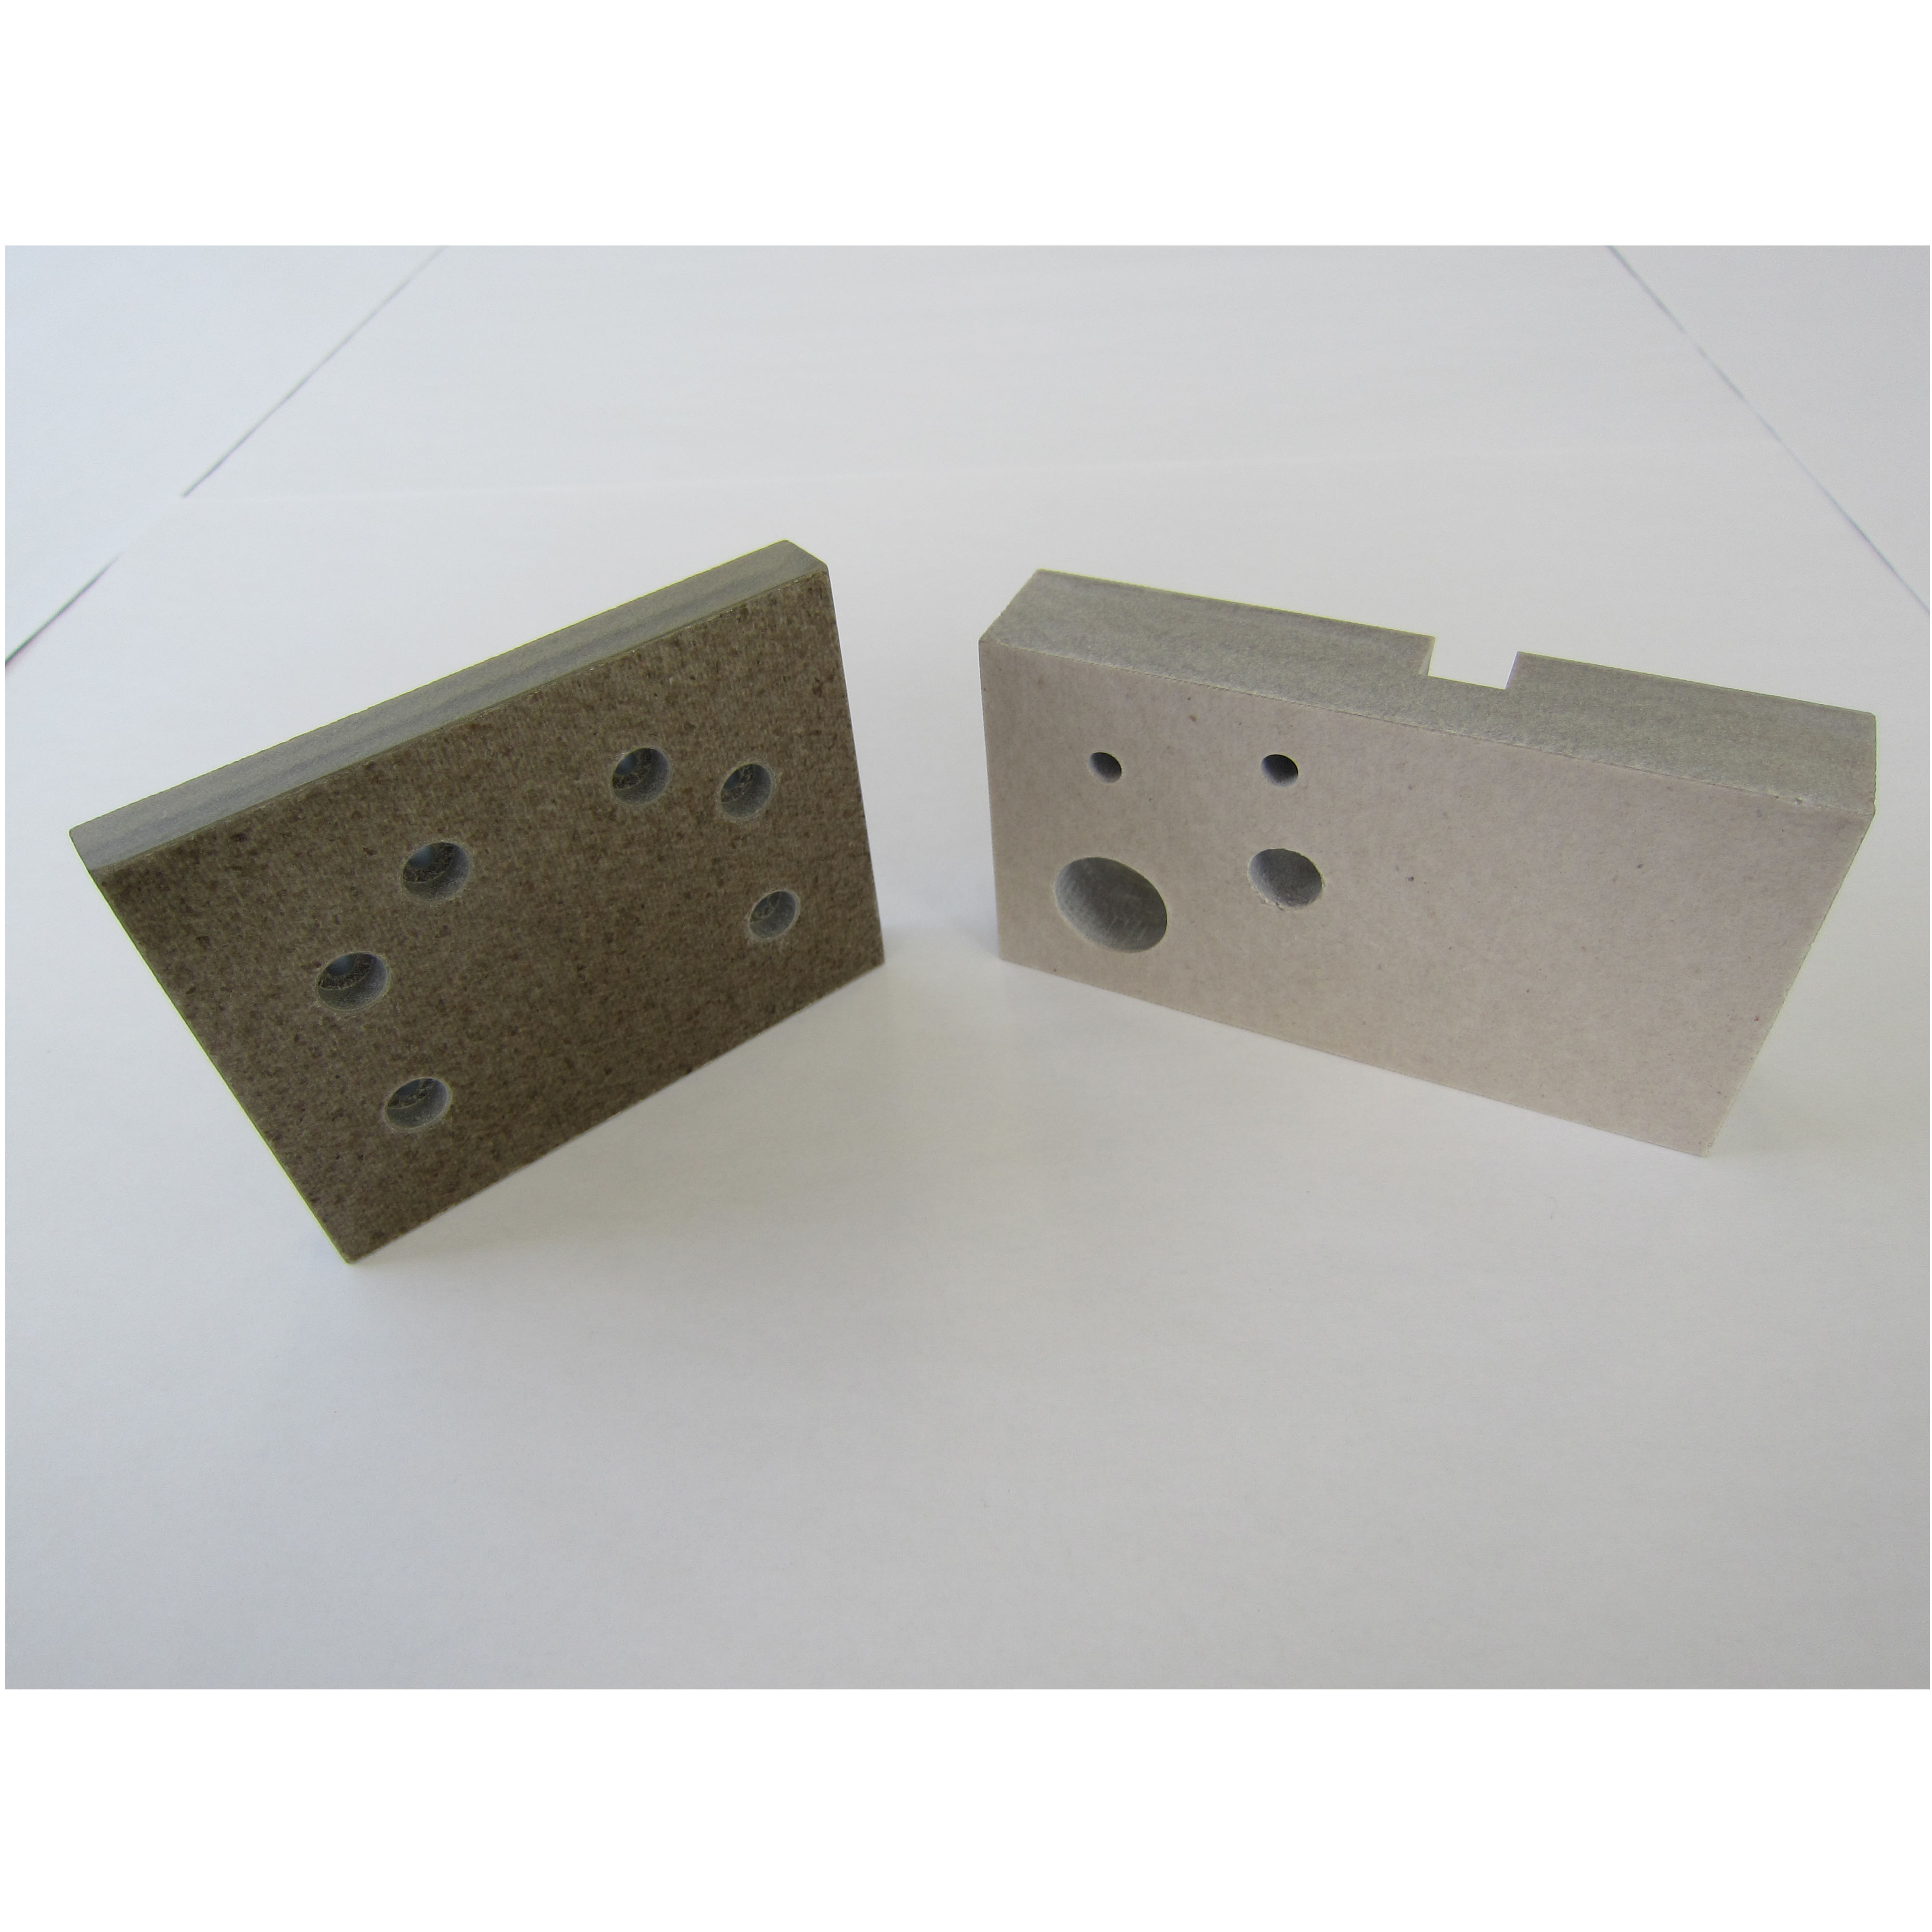 Japanese heat resistant silicone thermal insulation mica sheet